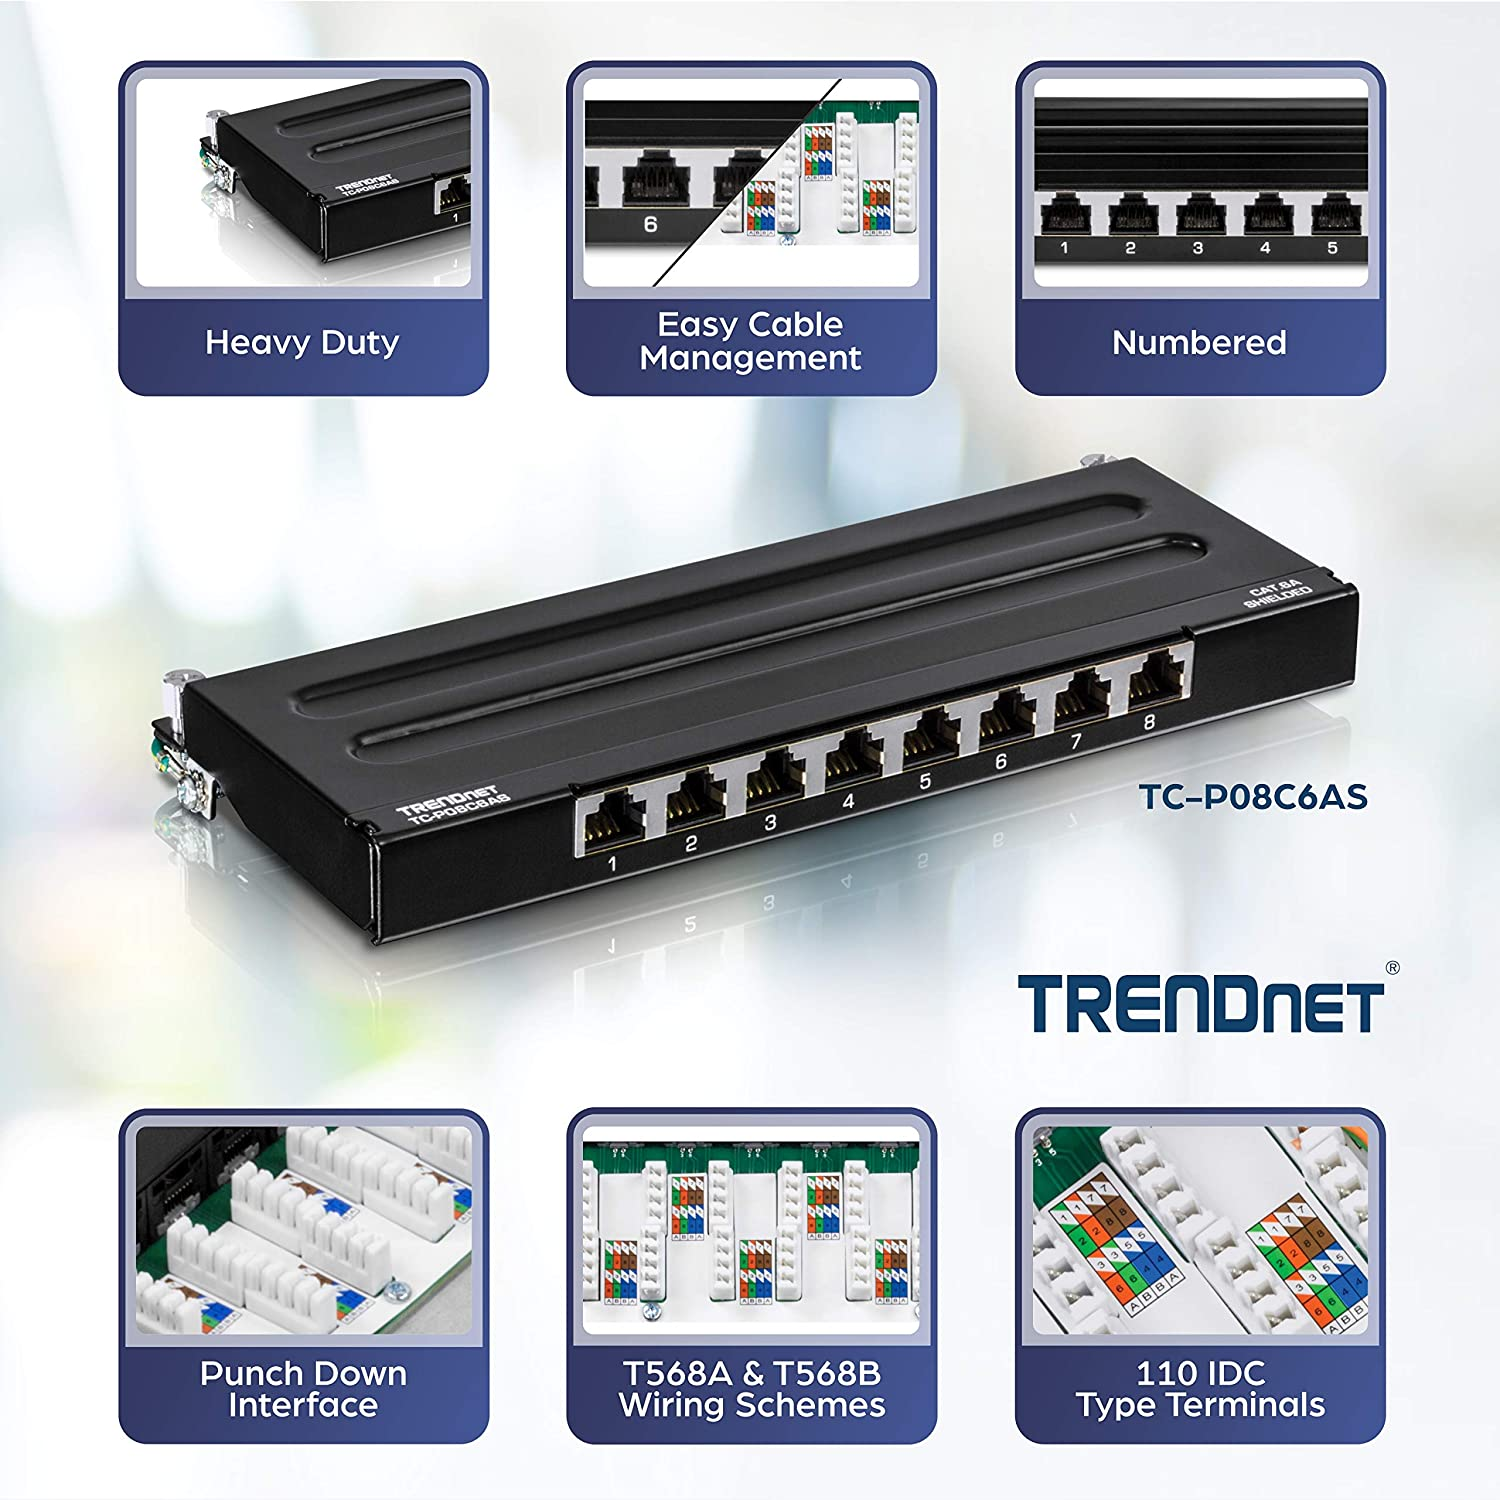 NPP1U24 Compatible 110 and Krone Type Tools and T568A and T568B Wiring V7 24 Port Cat6 Rack Mount Patch Panel